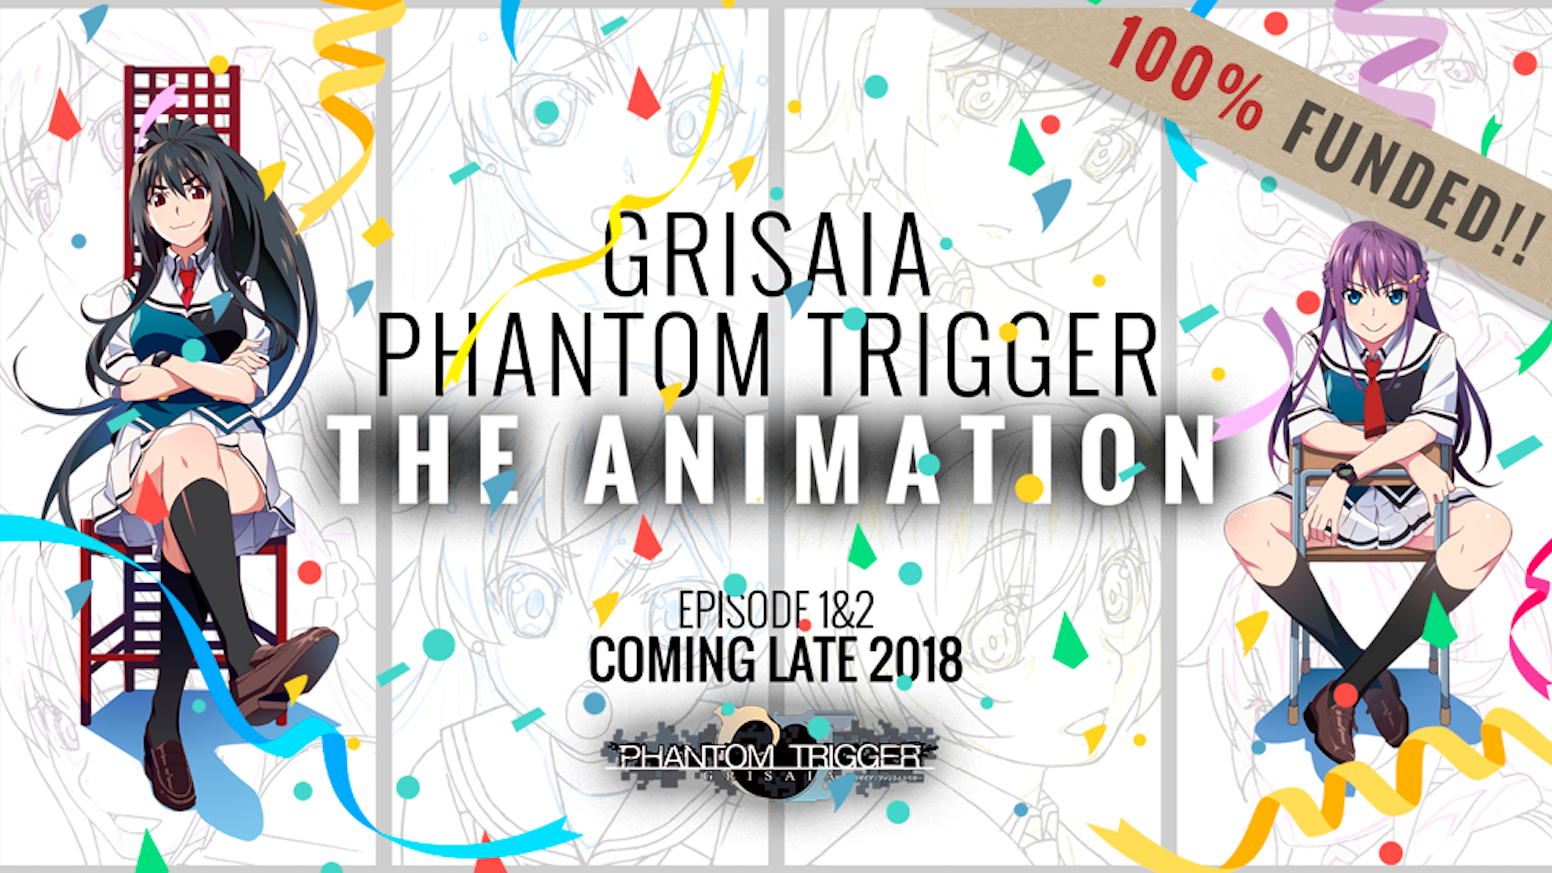 Be A Part Of The Grisaia: Phantom Trigger Anime Launch! by